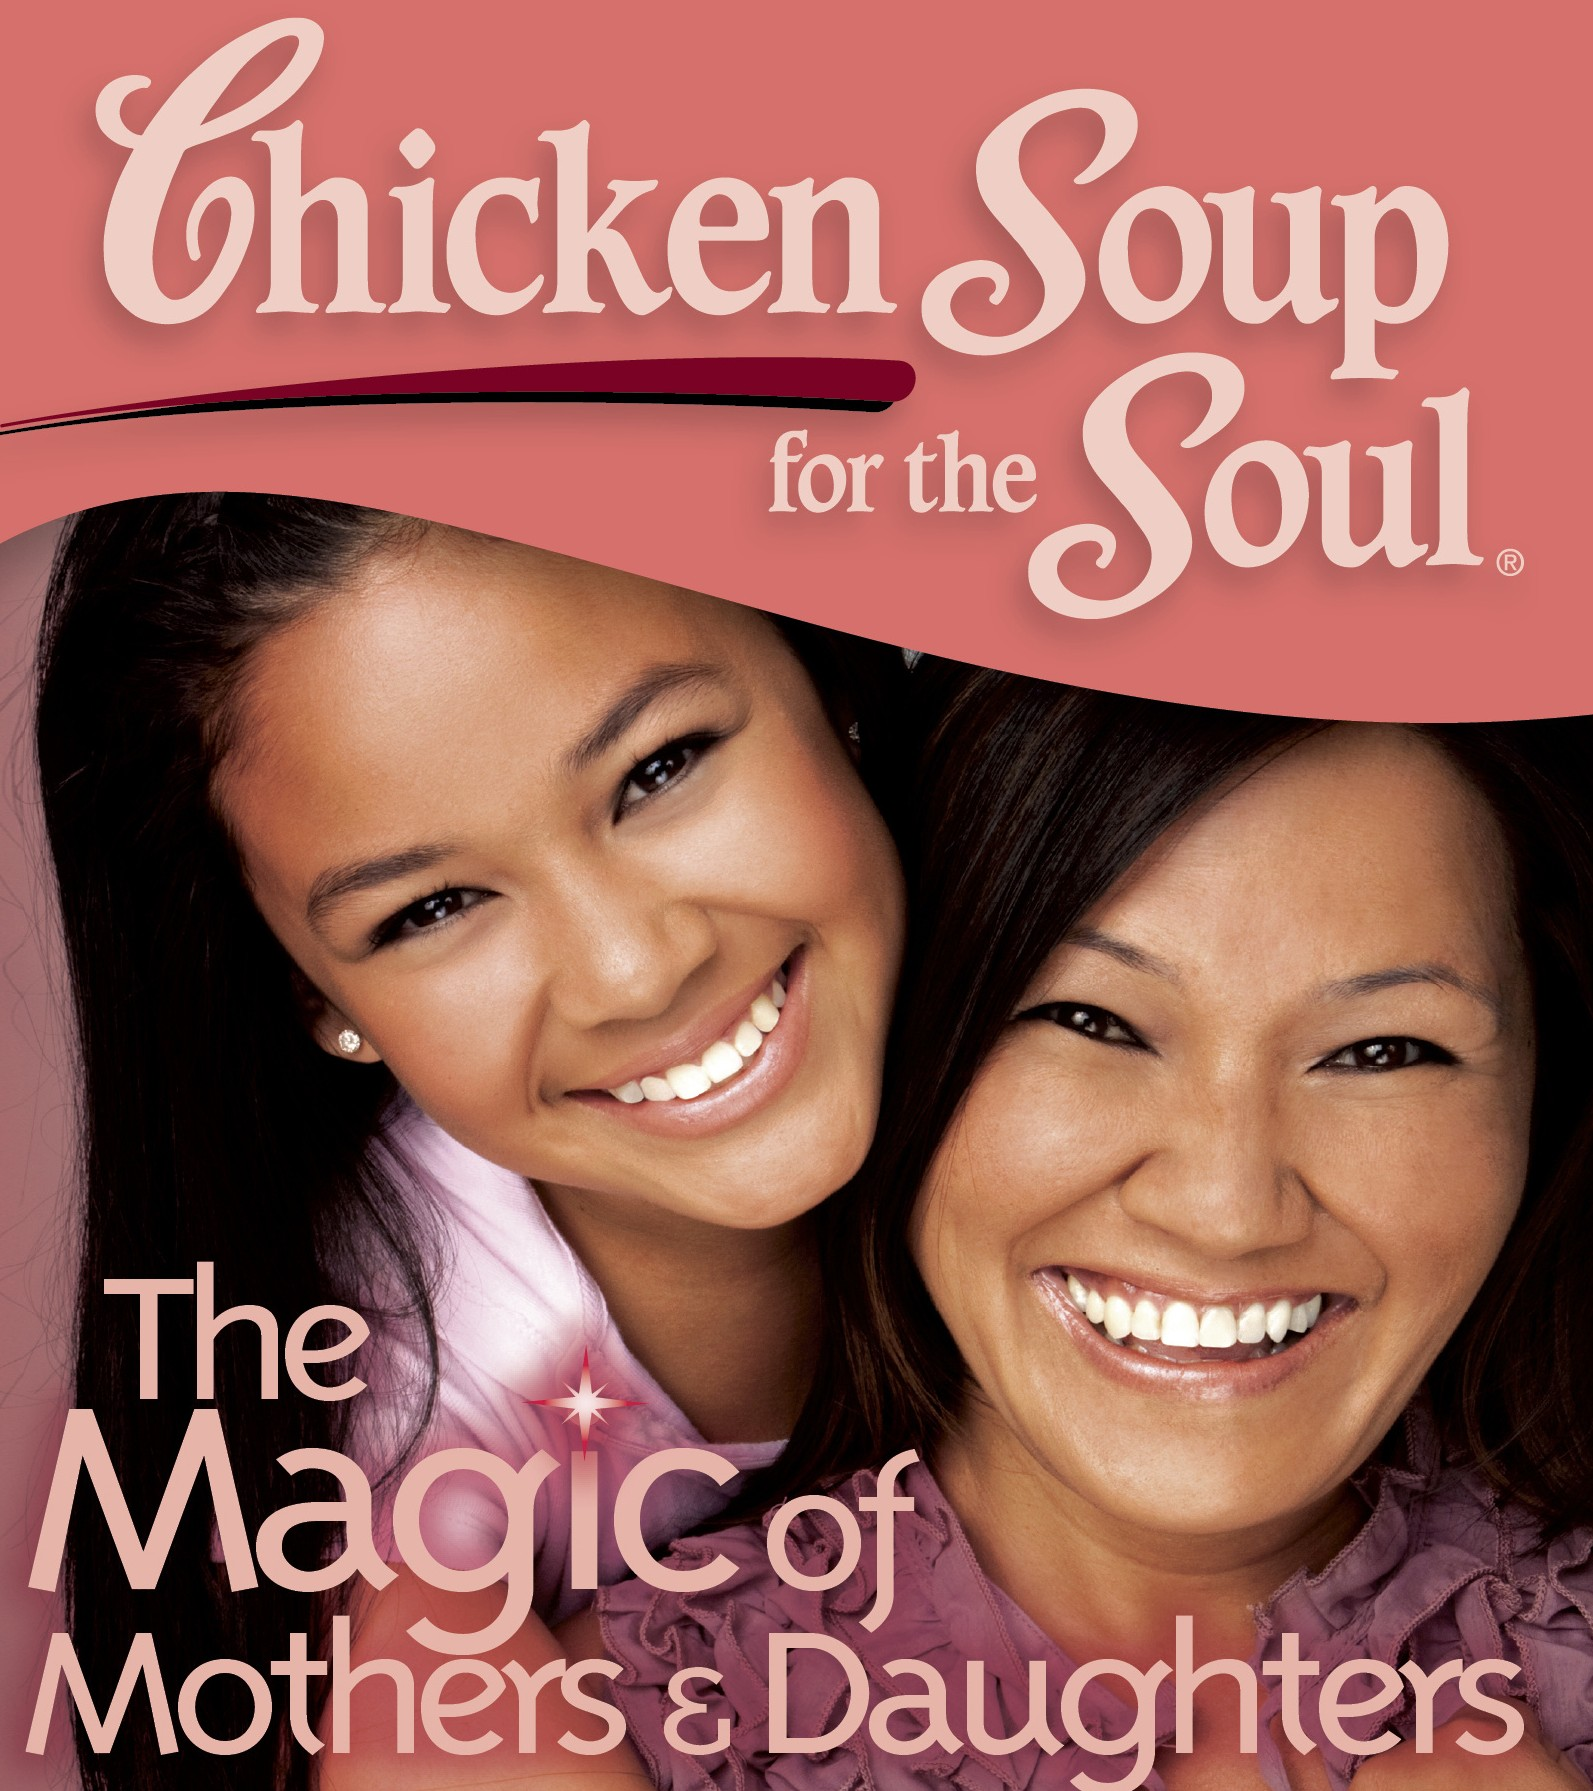 My Chicken Soup for the Soul Chronicles: The Magic of Mothers and Daughters